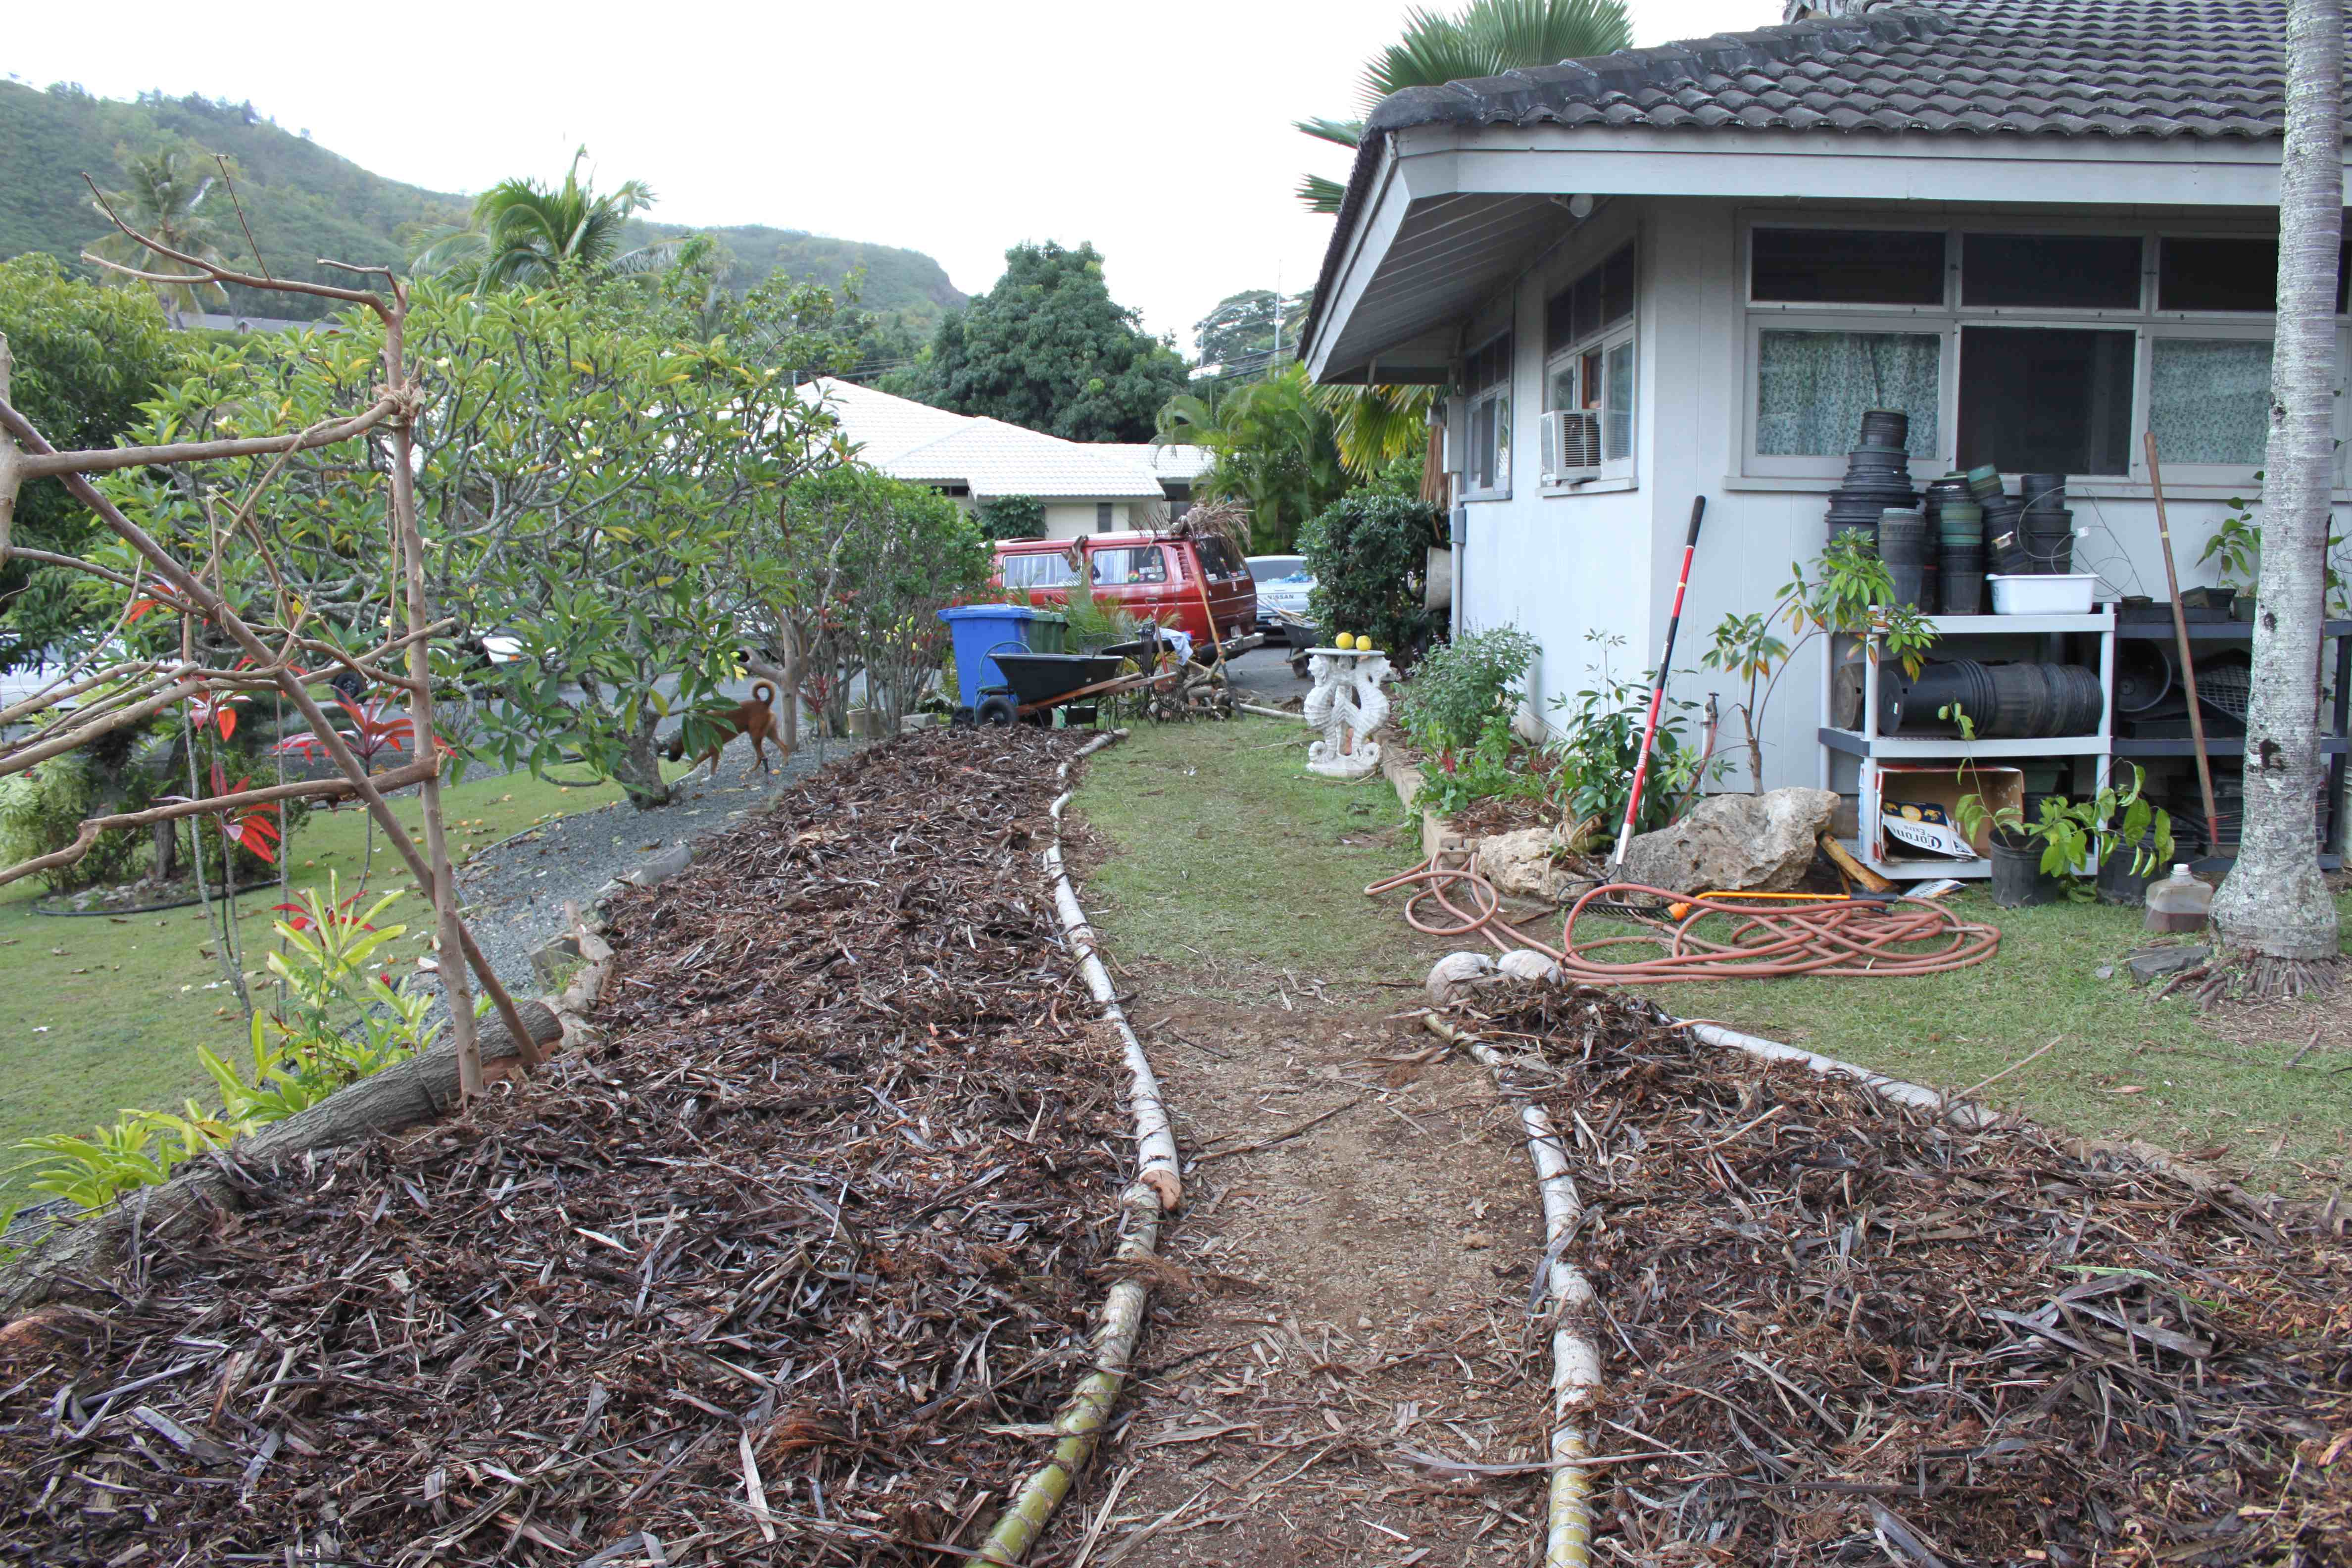 No dig vegetable gardens with raised garden beds - A Chicken Tractor System Will Be Used To Weed Fertilize And Prepare The Garden Beds Chickens Are Let Into Each Area At The End Of The Crop Rotation